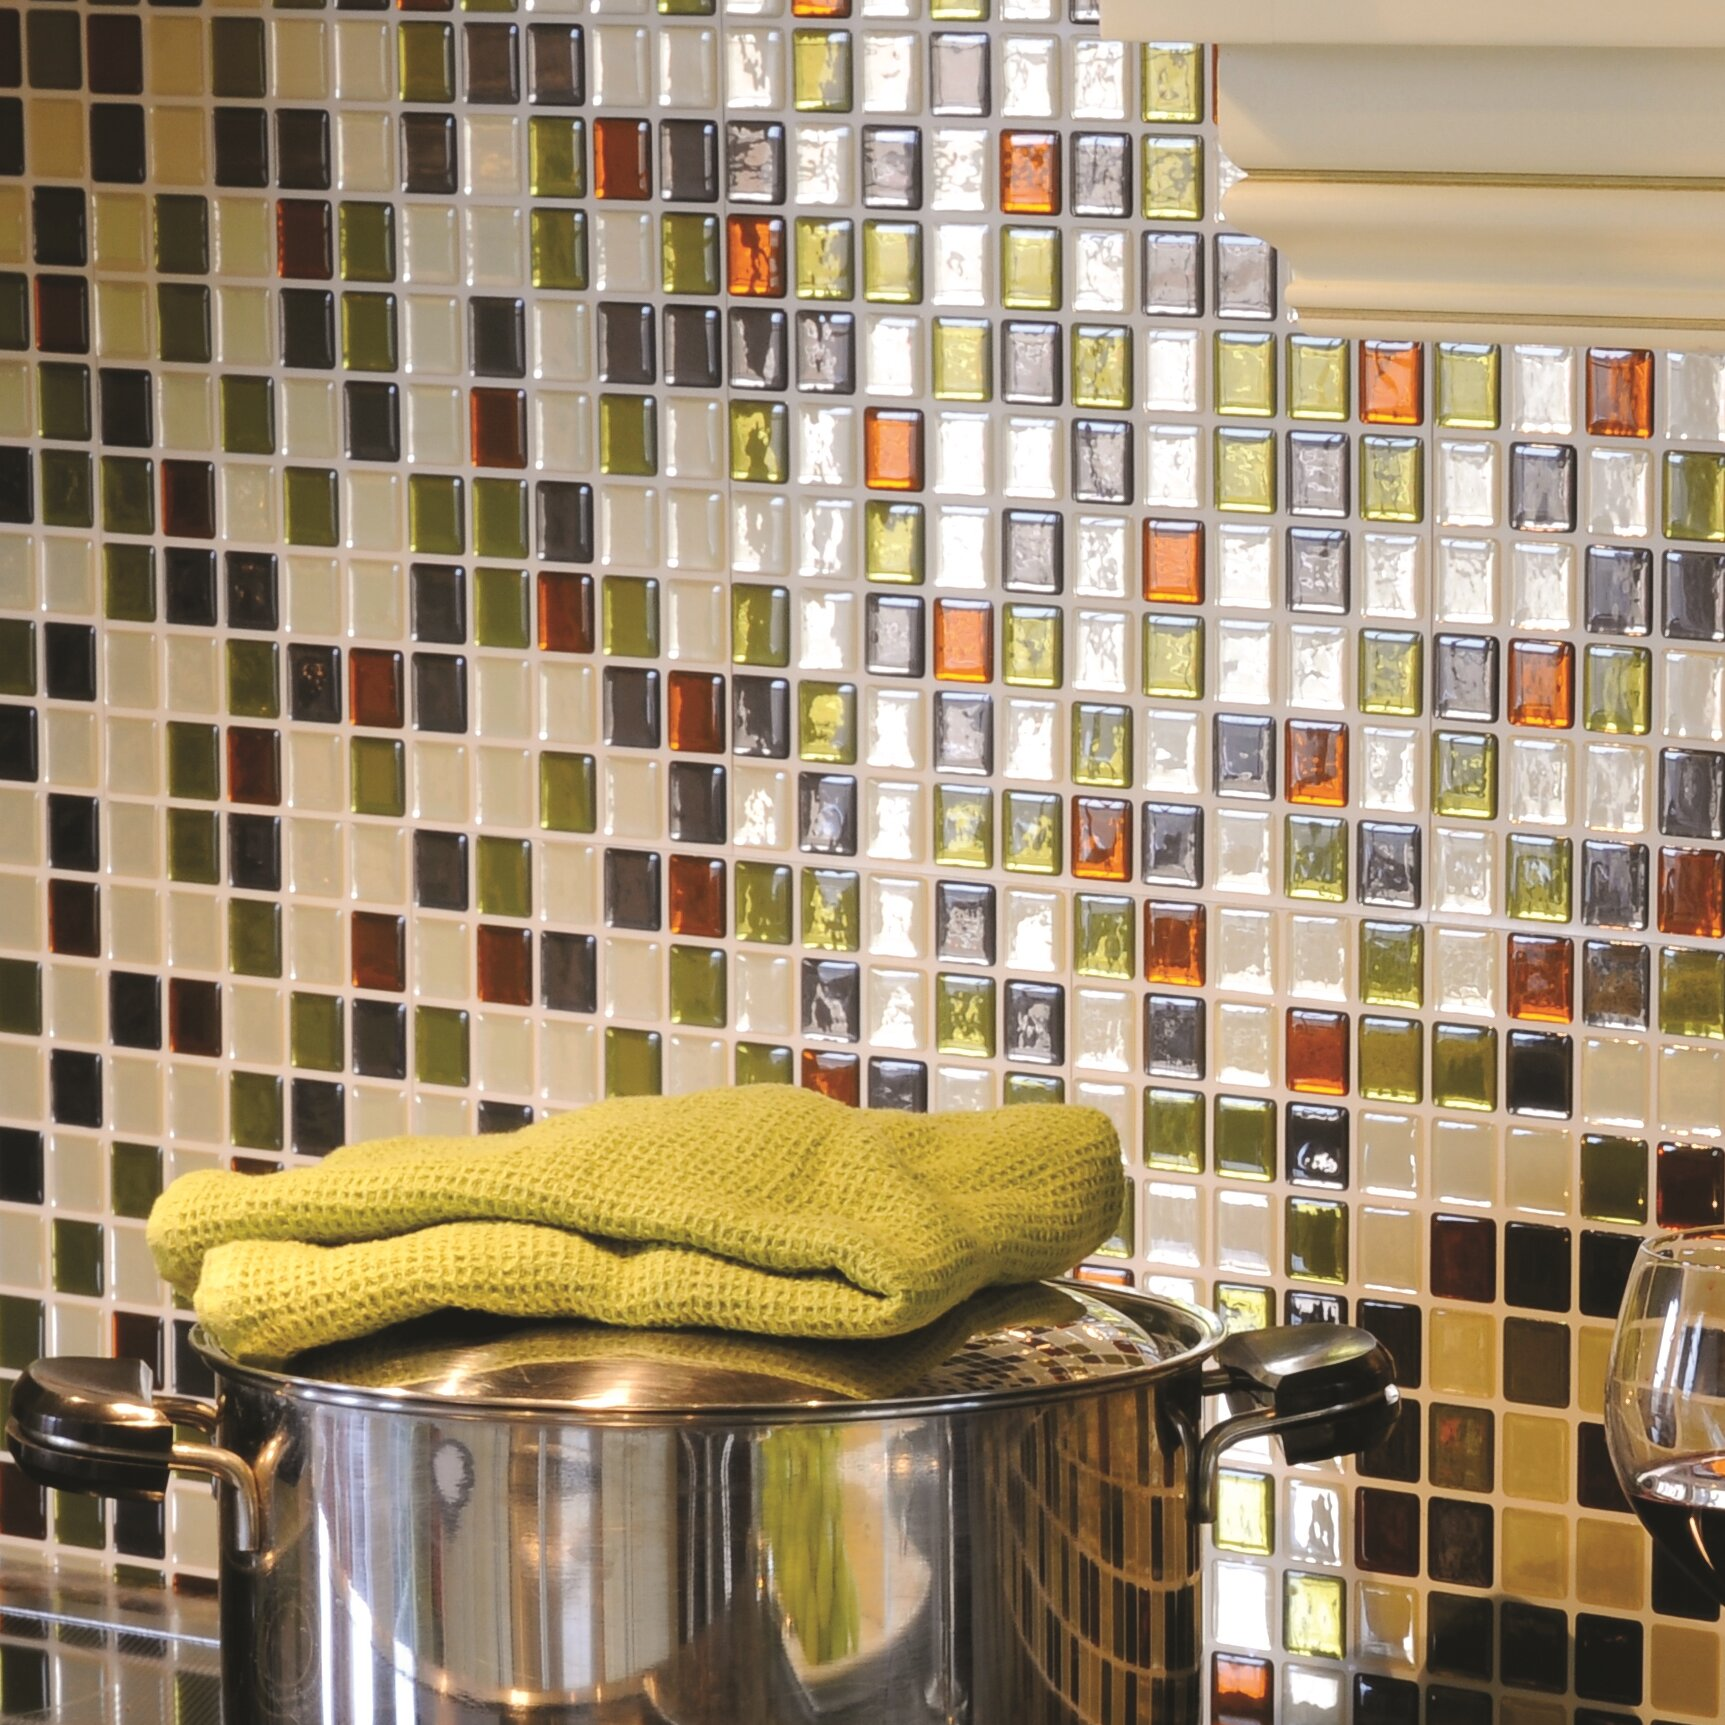 "Peel And Stick Backsplash Tiles: Smart Tiles Mosaic Idaho 9.85"" X 9.85"" Peel & Stick Wall"